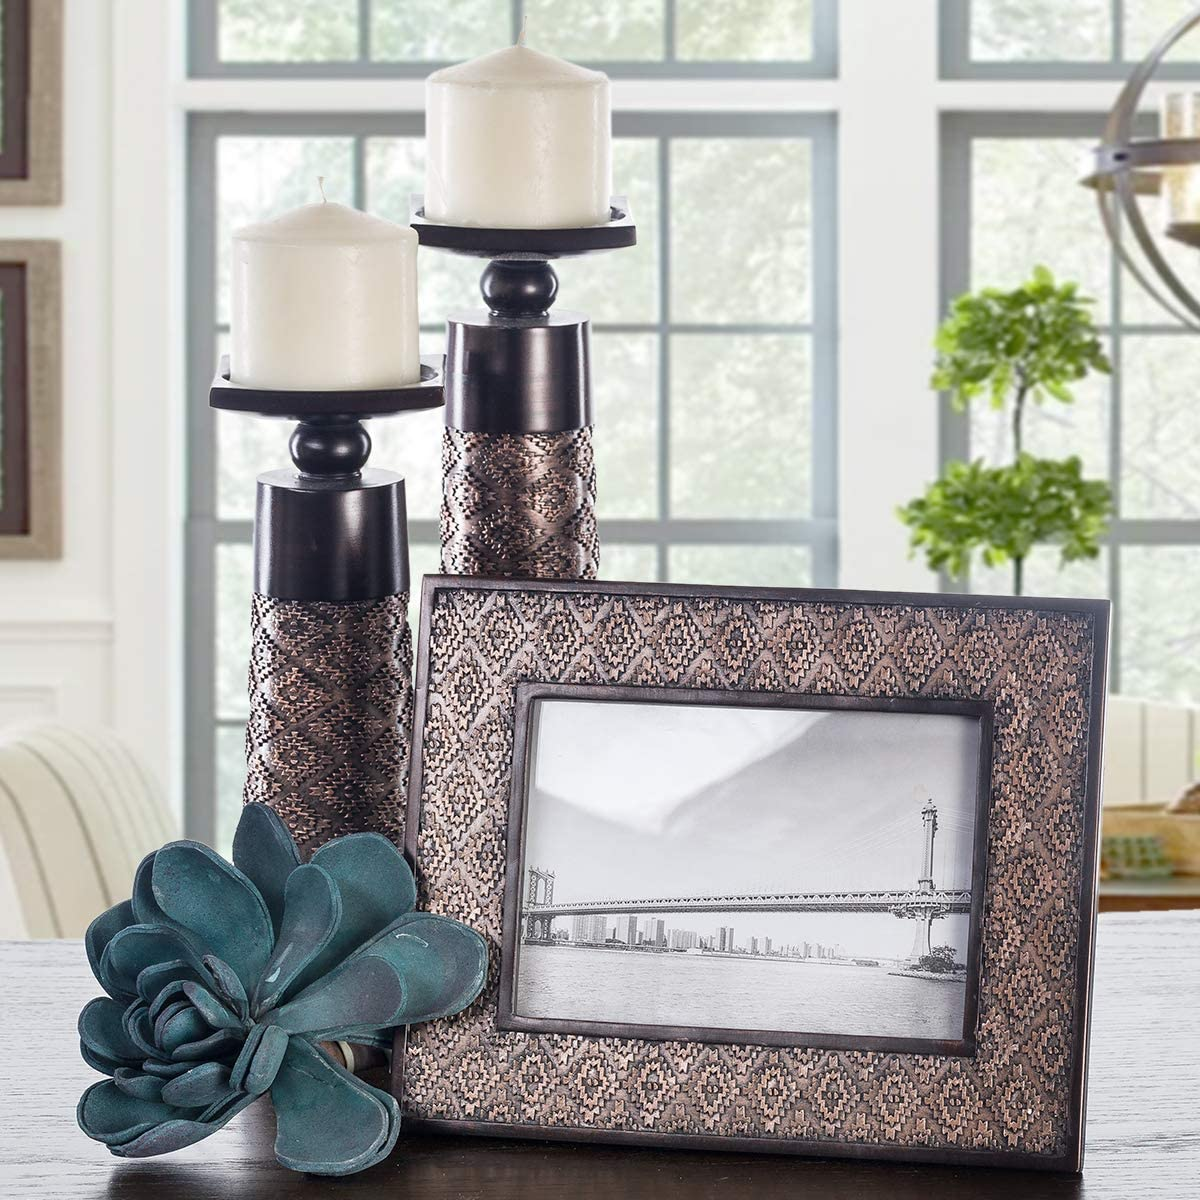 Living Or Dining Room Table Coffee Brown Home Decor Centerpiece For Fireplace Creative Scents Dublin Set